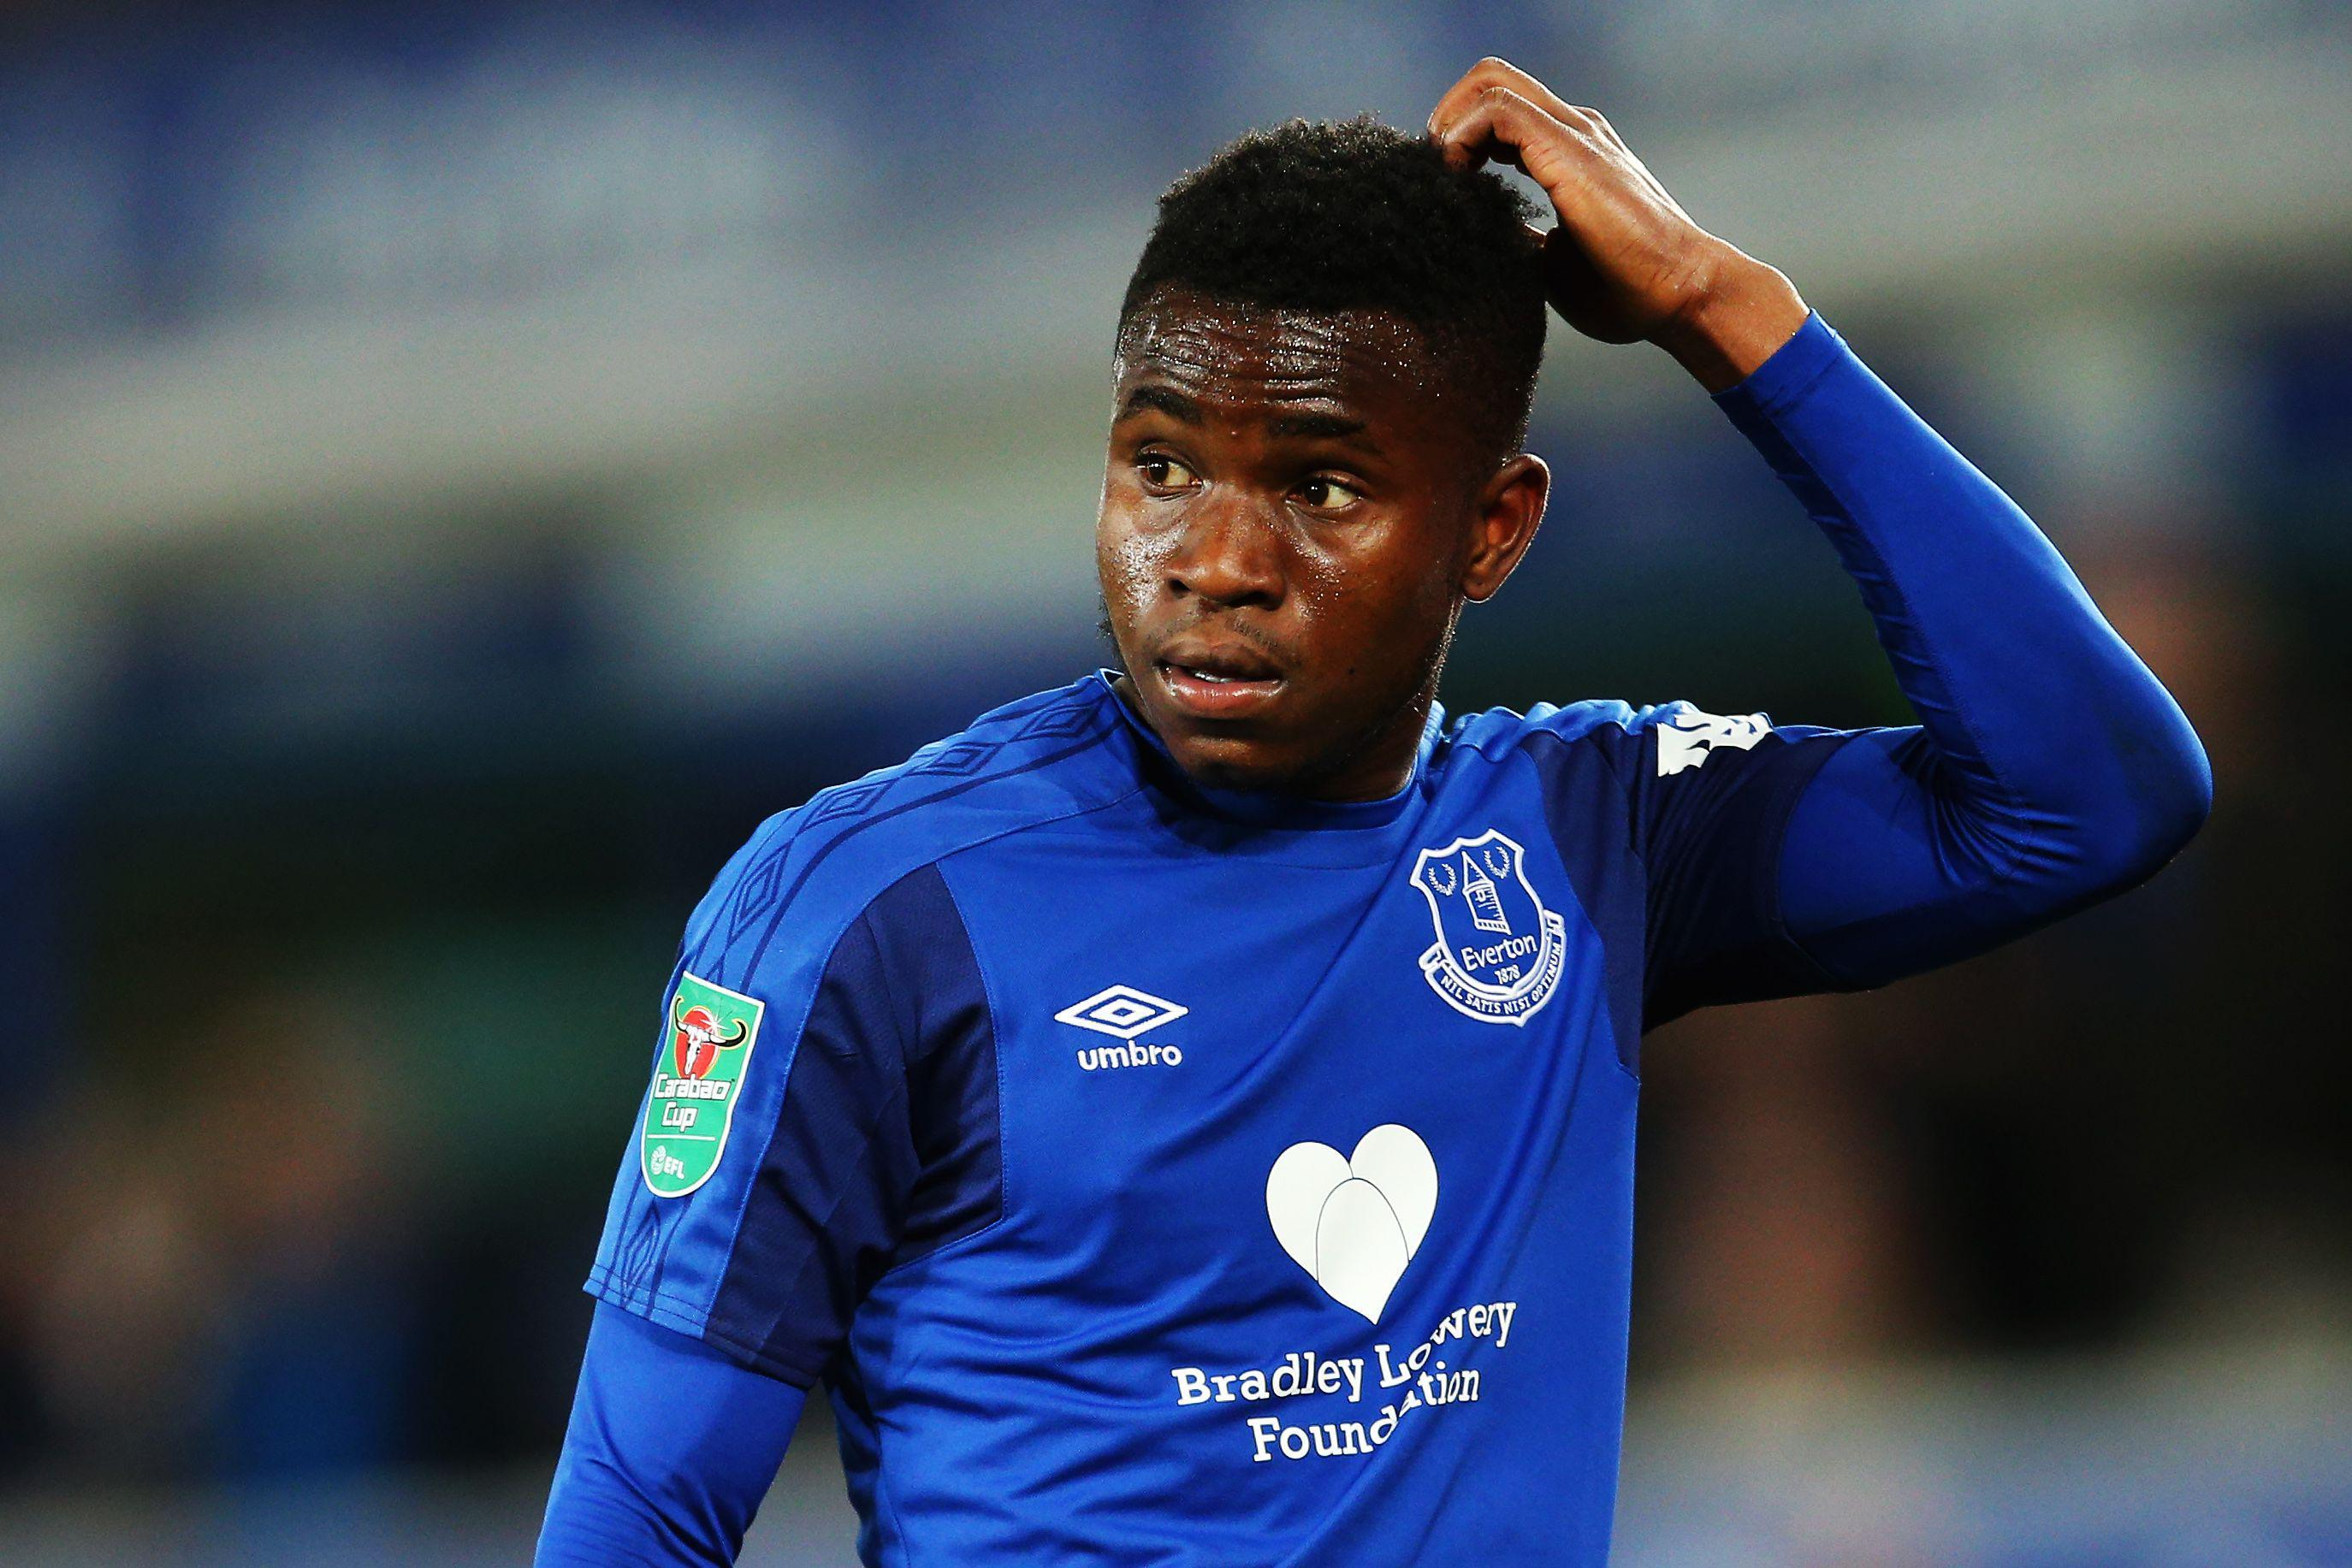 'Stubborn' Ademola Lookman joined RB Leipzig on loan against Everton's wishes, reveals Sam Allardyce